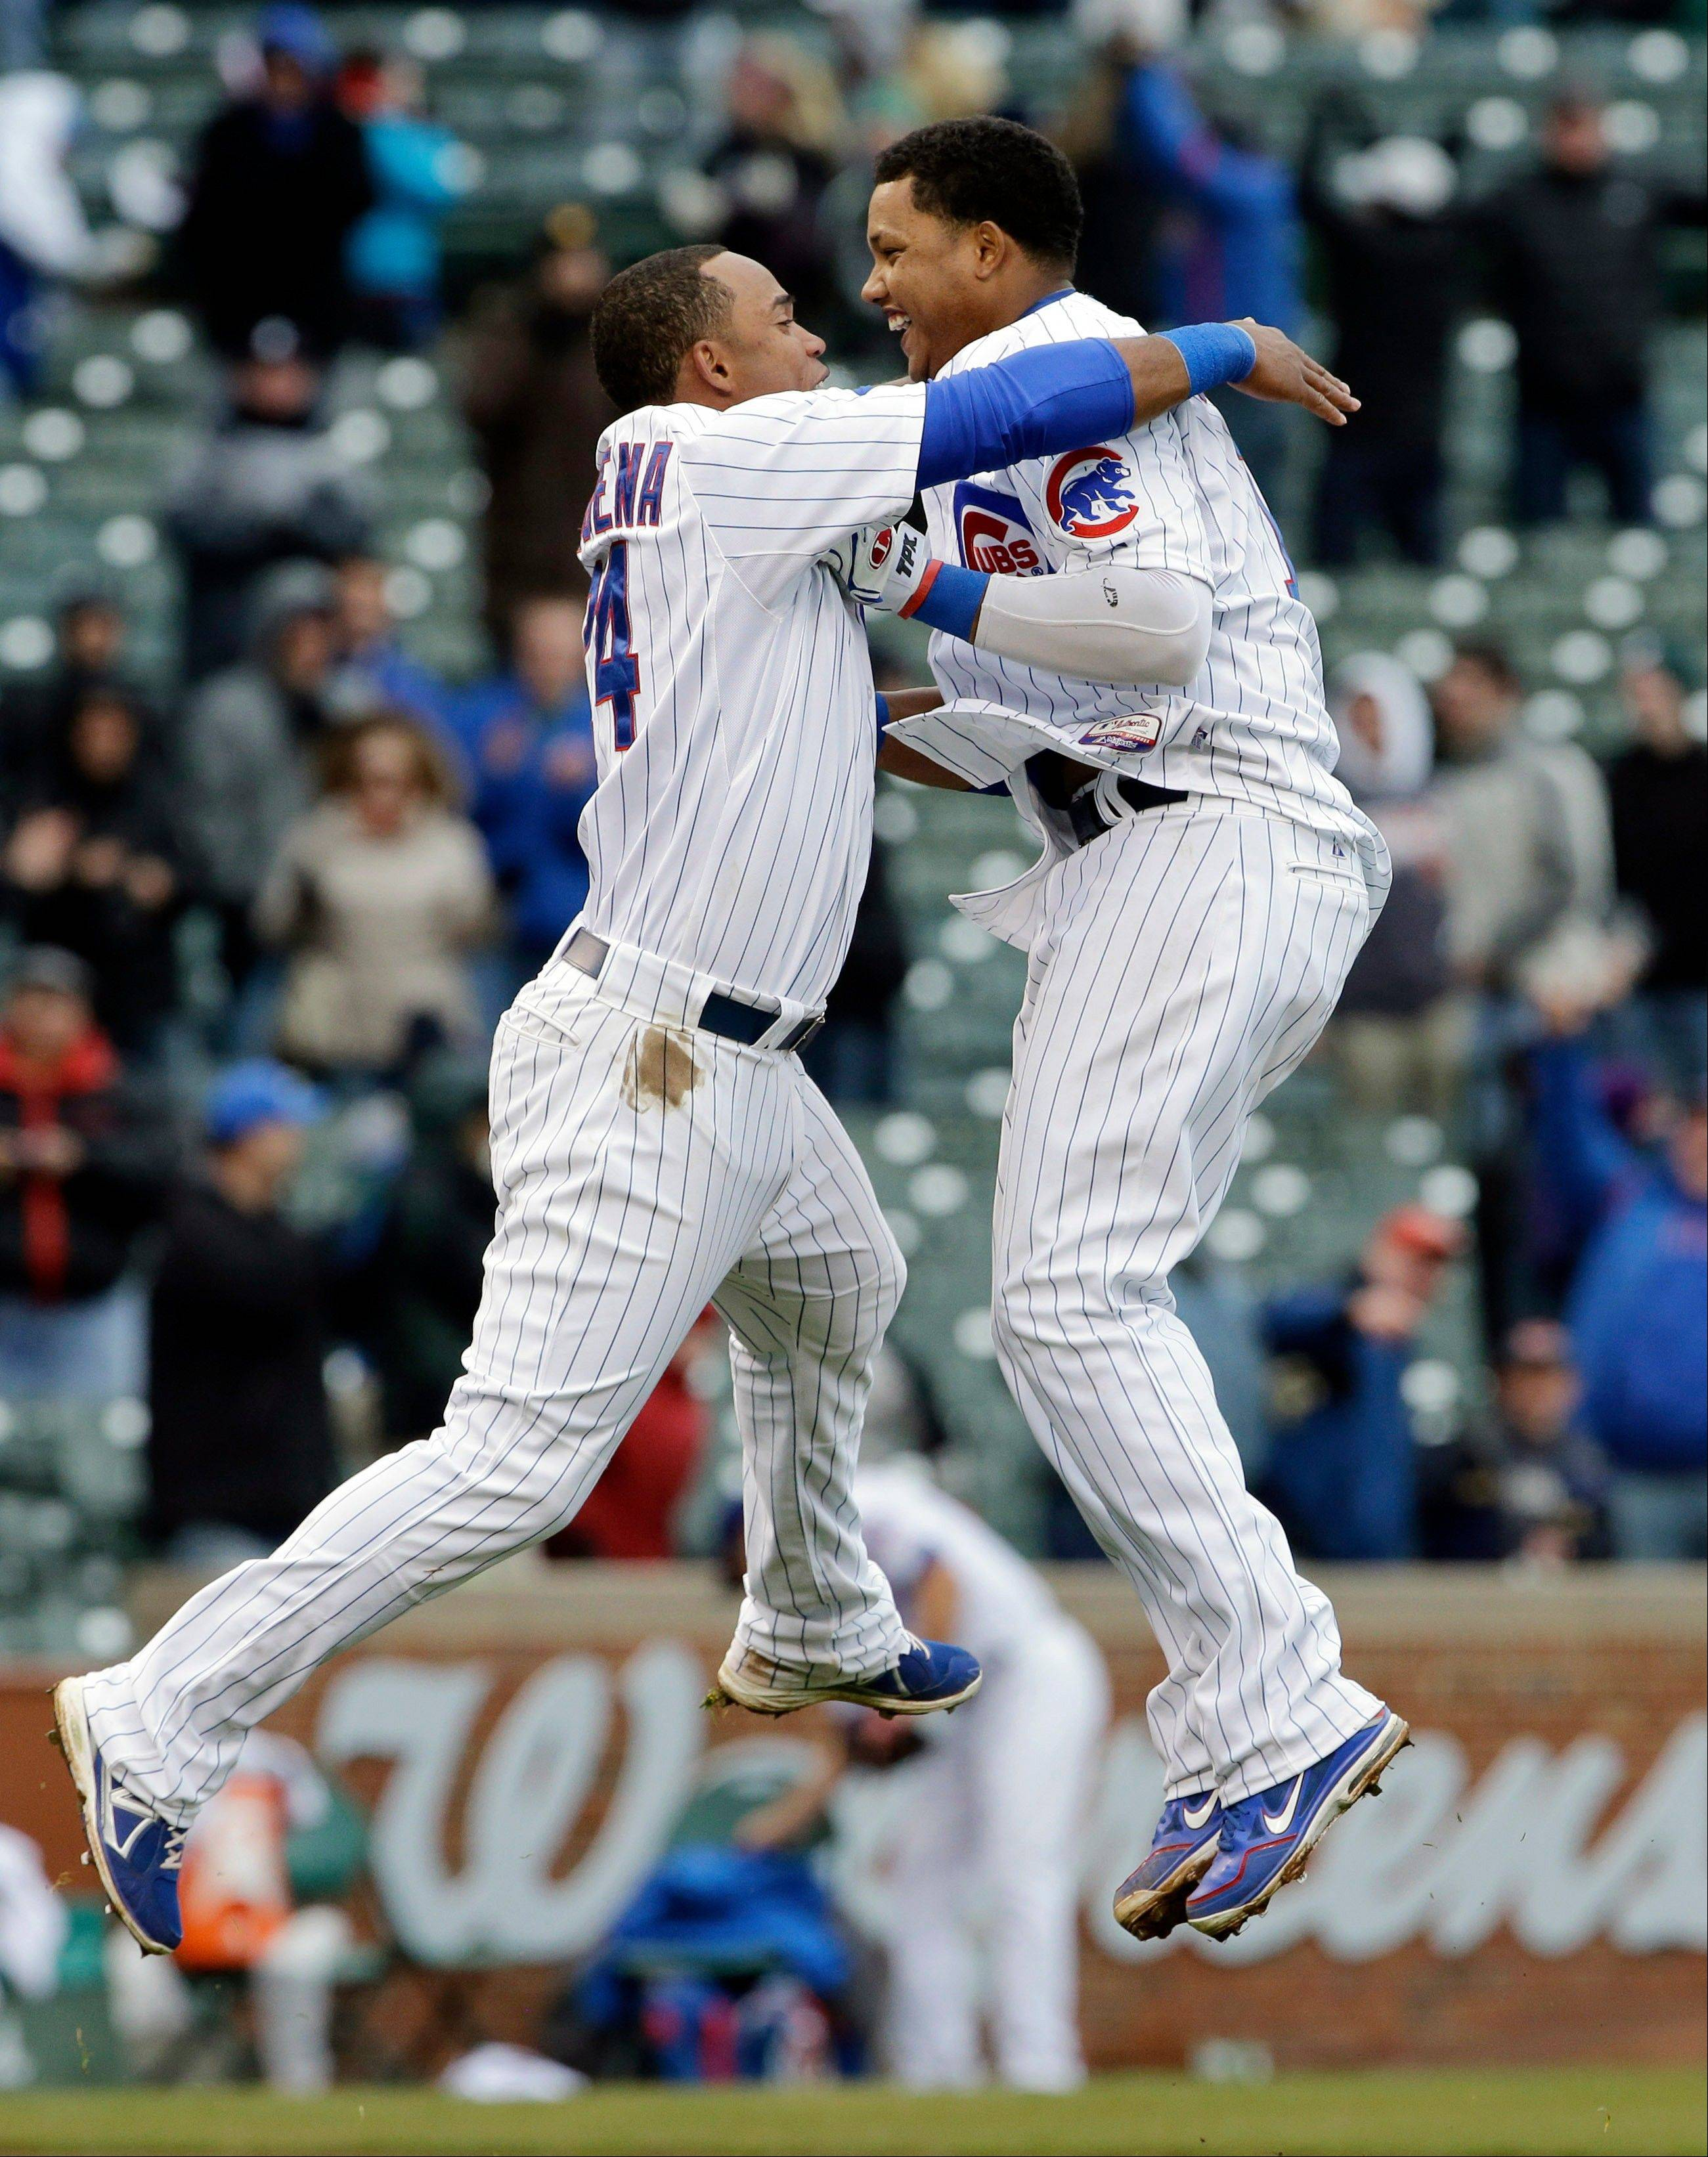 Chicago Cubs' Starlin Castro, right, celebrates with teammate Luis Valbuena after hitting a game-winning double against the San Francisco Giants during the ninth inning of a baseball game in Chicago, Friday, April 12, 2013. The Cubs won 4-3.